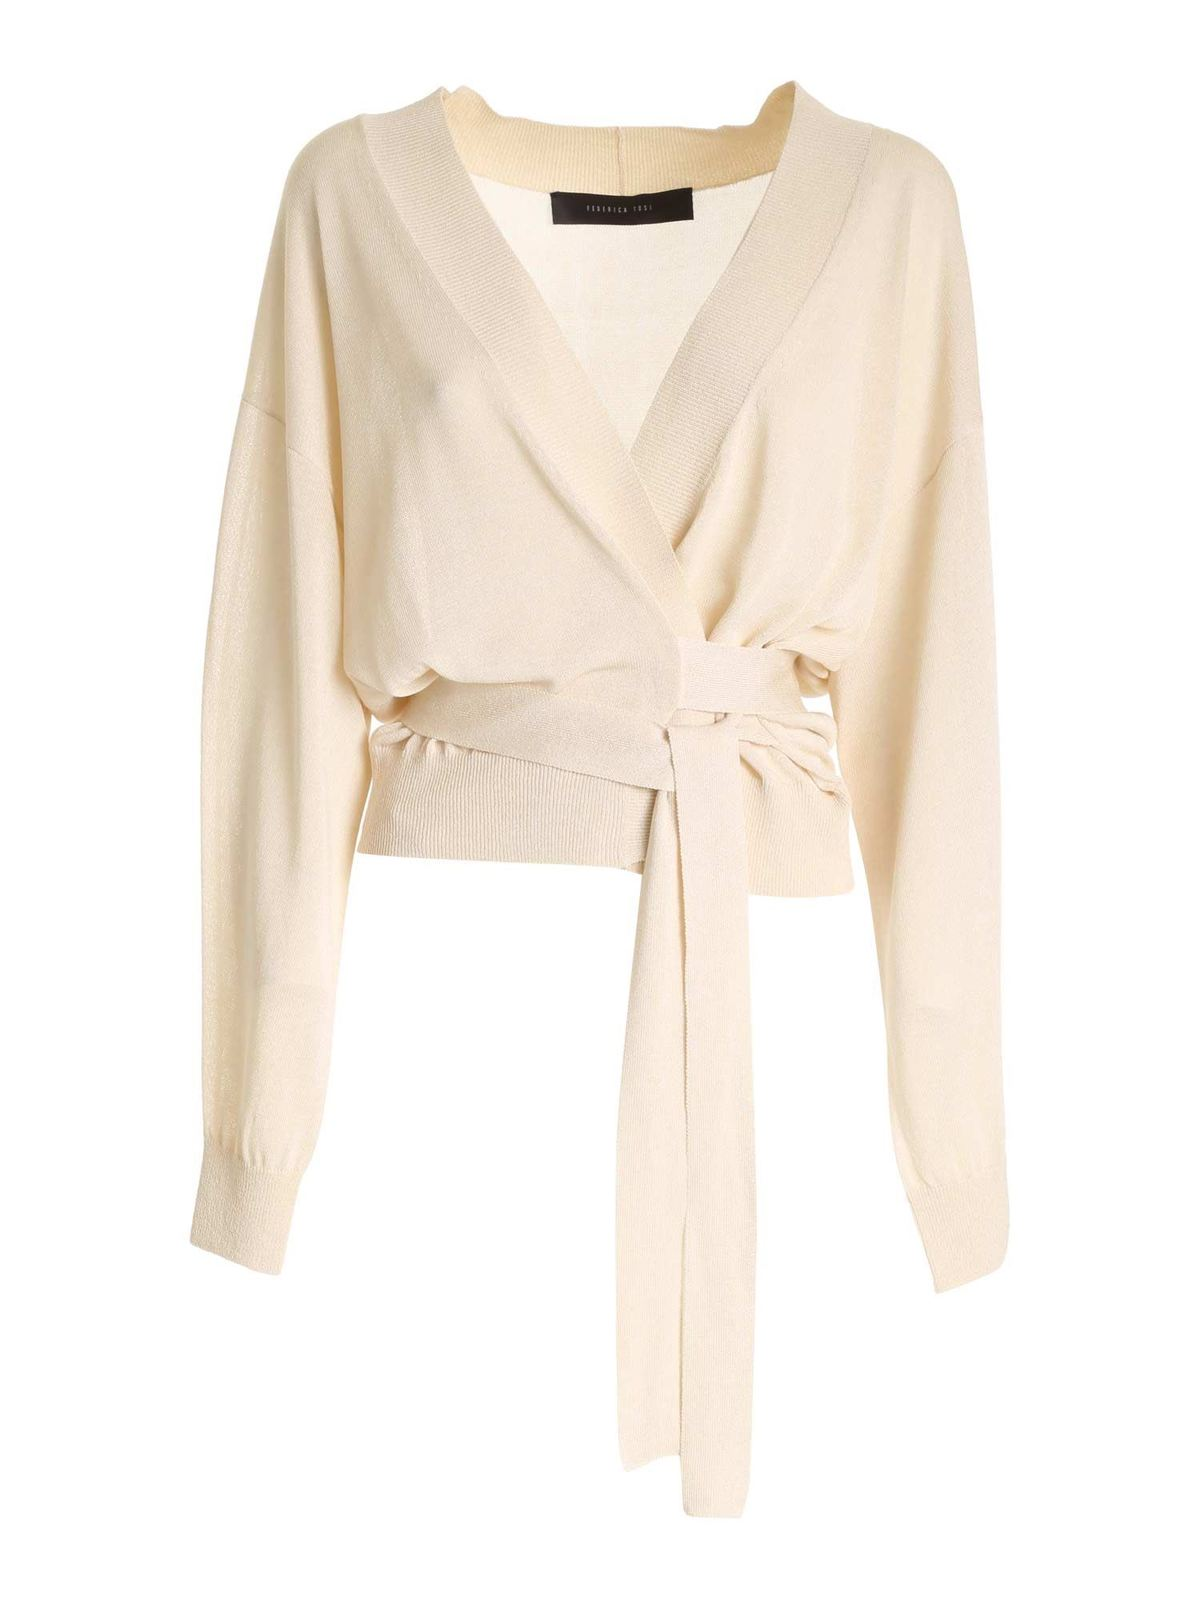 Federica Tosi Cardigans BELTED CARDIGAN IN IVORY